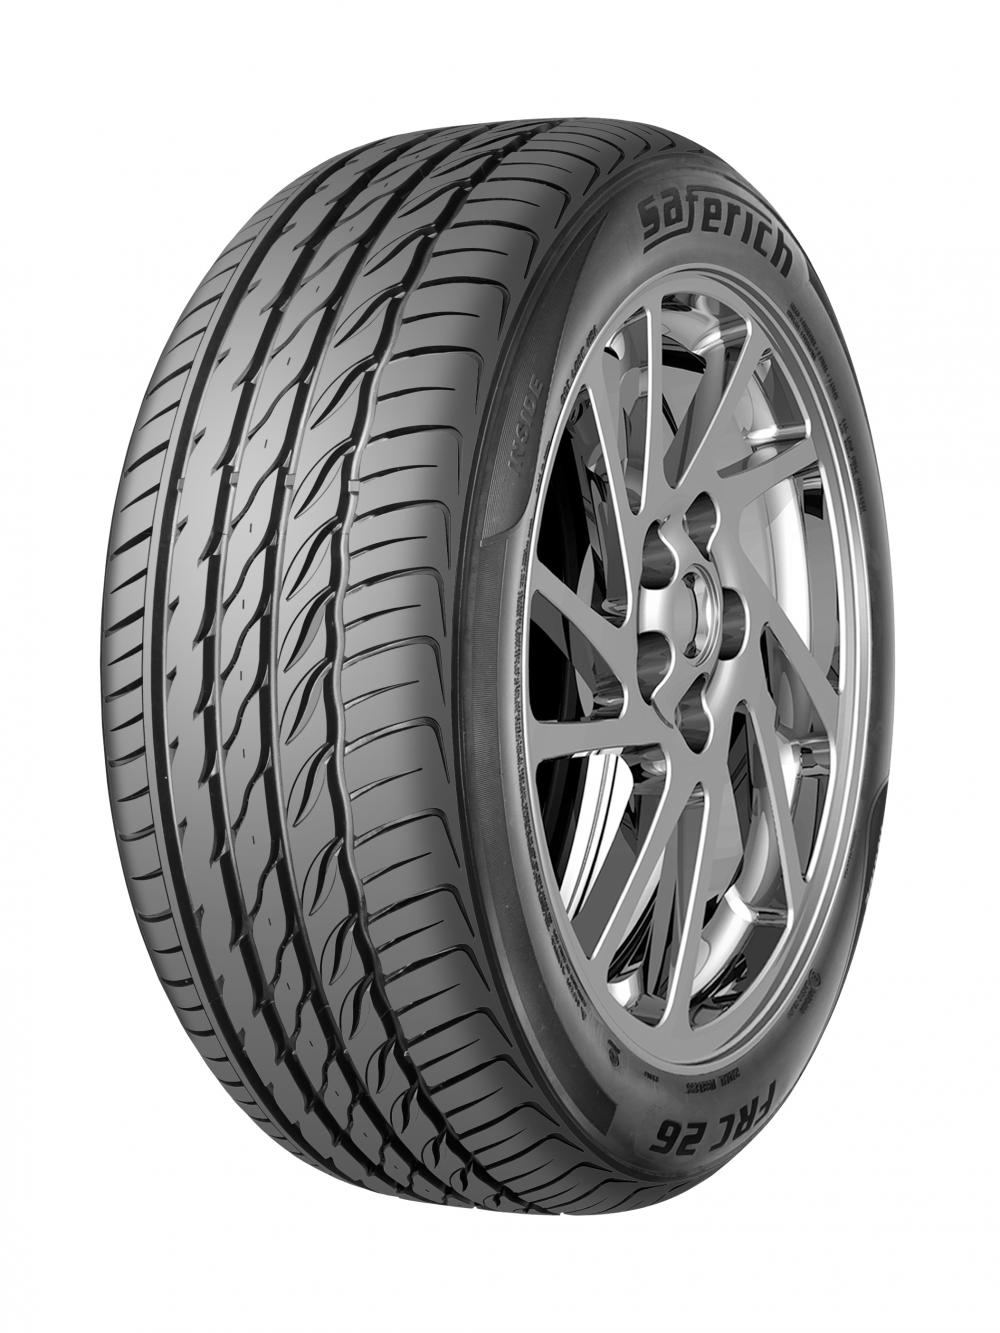 215 / 35ZR18 Sport UHP Tyre